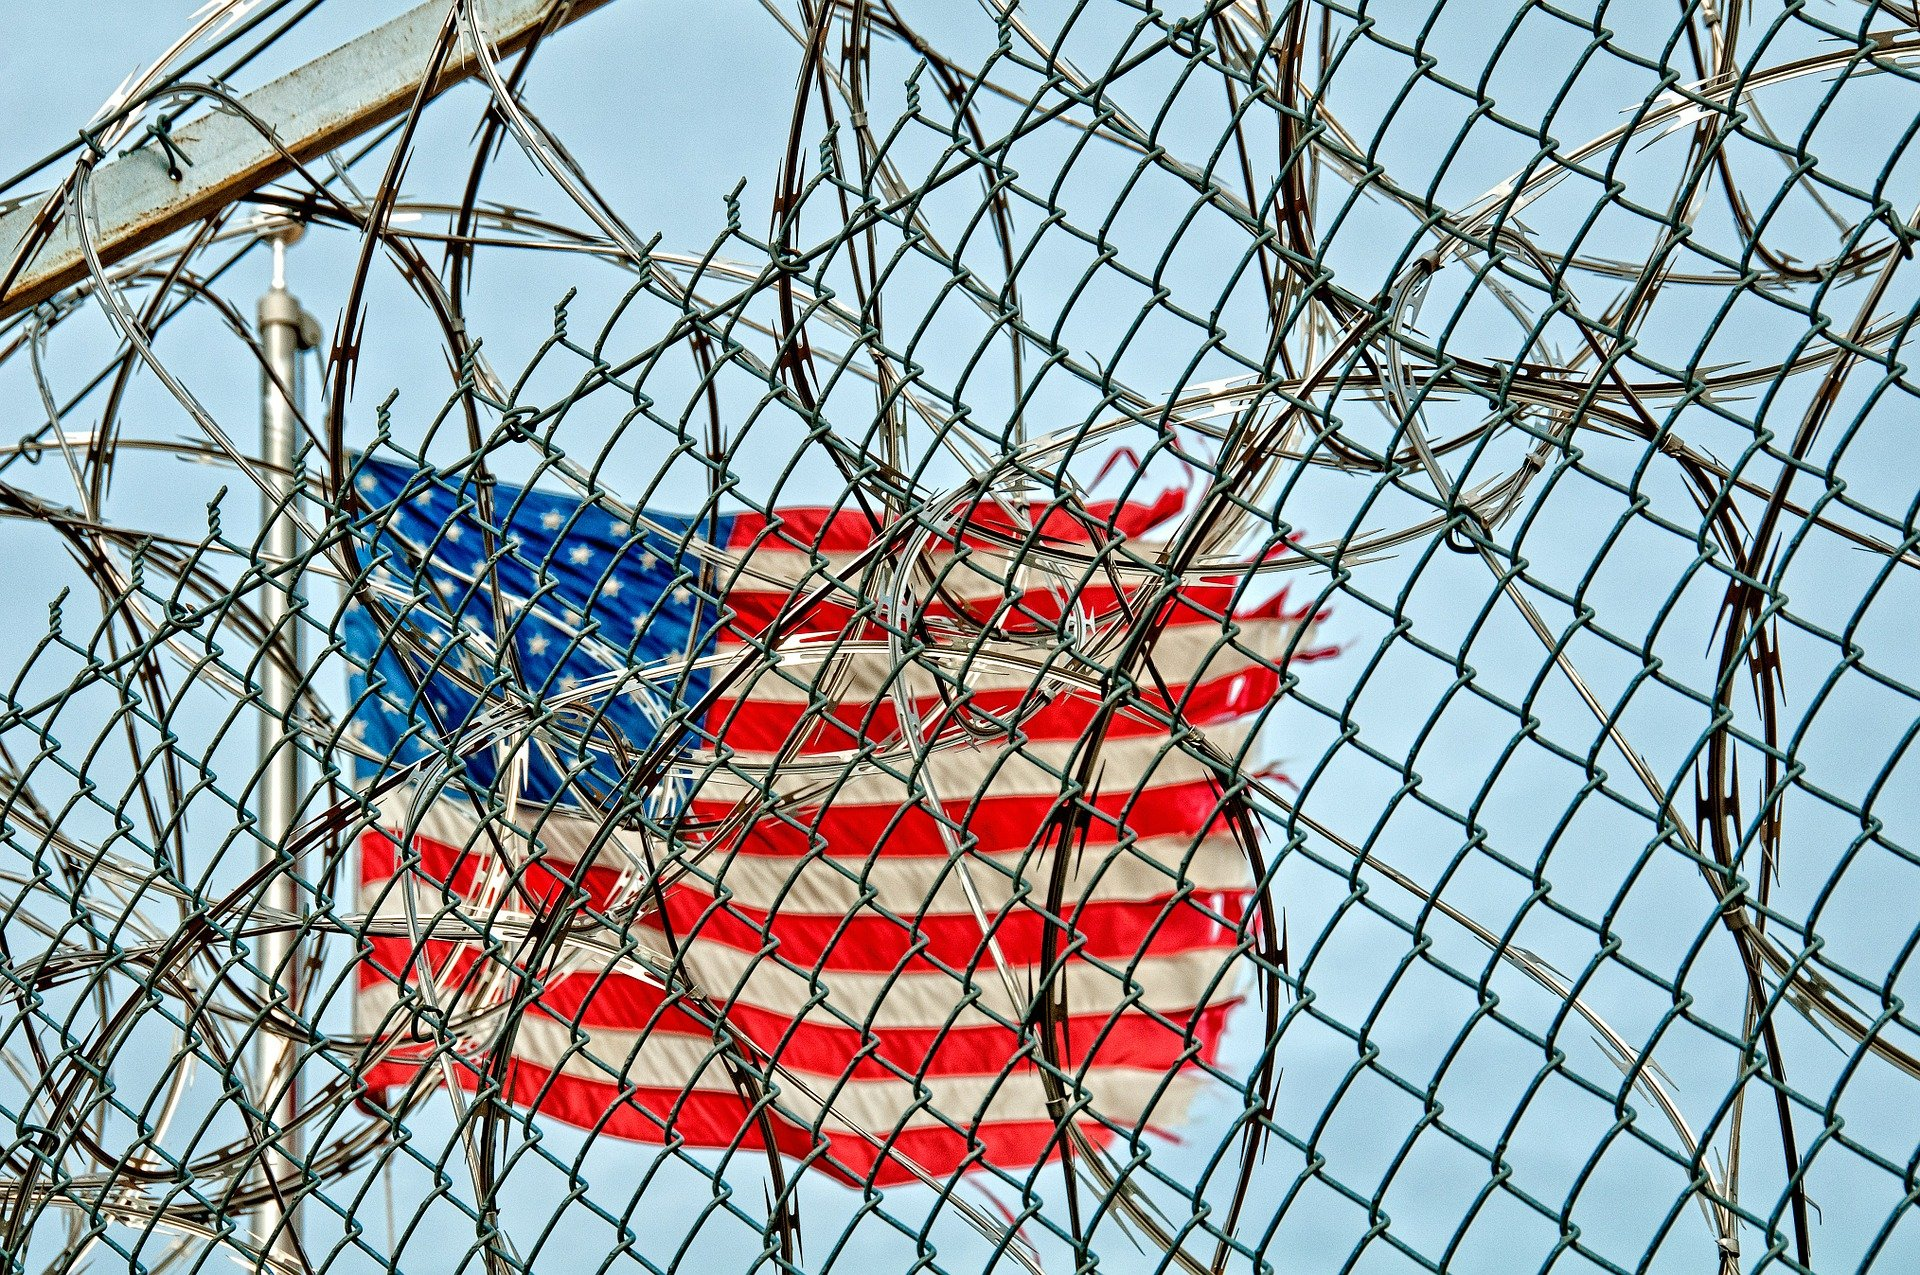 Pictured - Prison detention wire fence and the American flag | Source: Pixabay